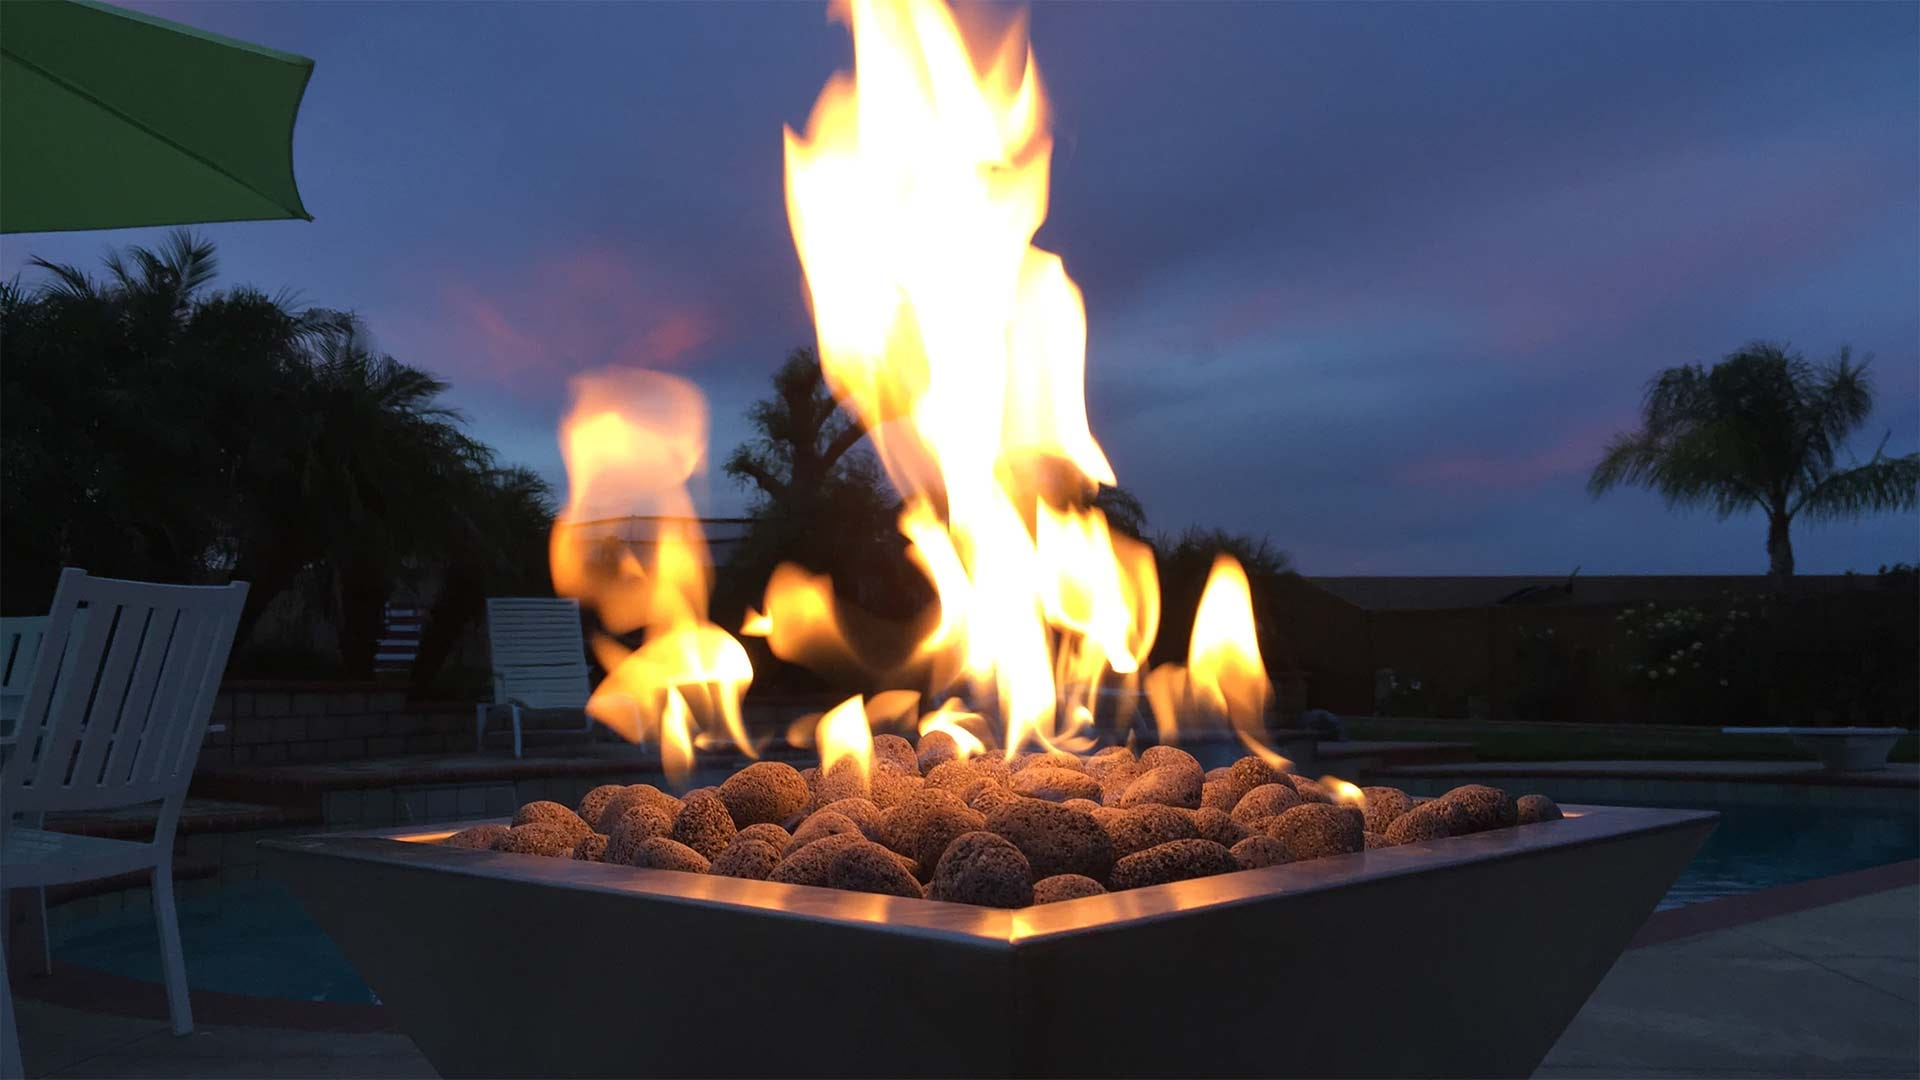 A backyard fire table loaded with lava stones.